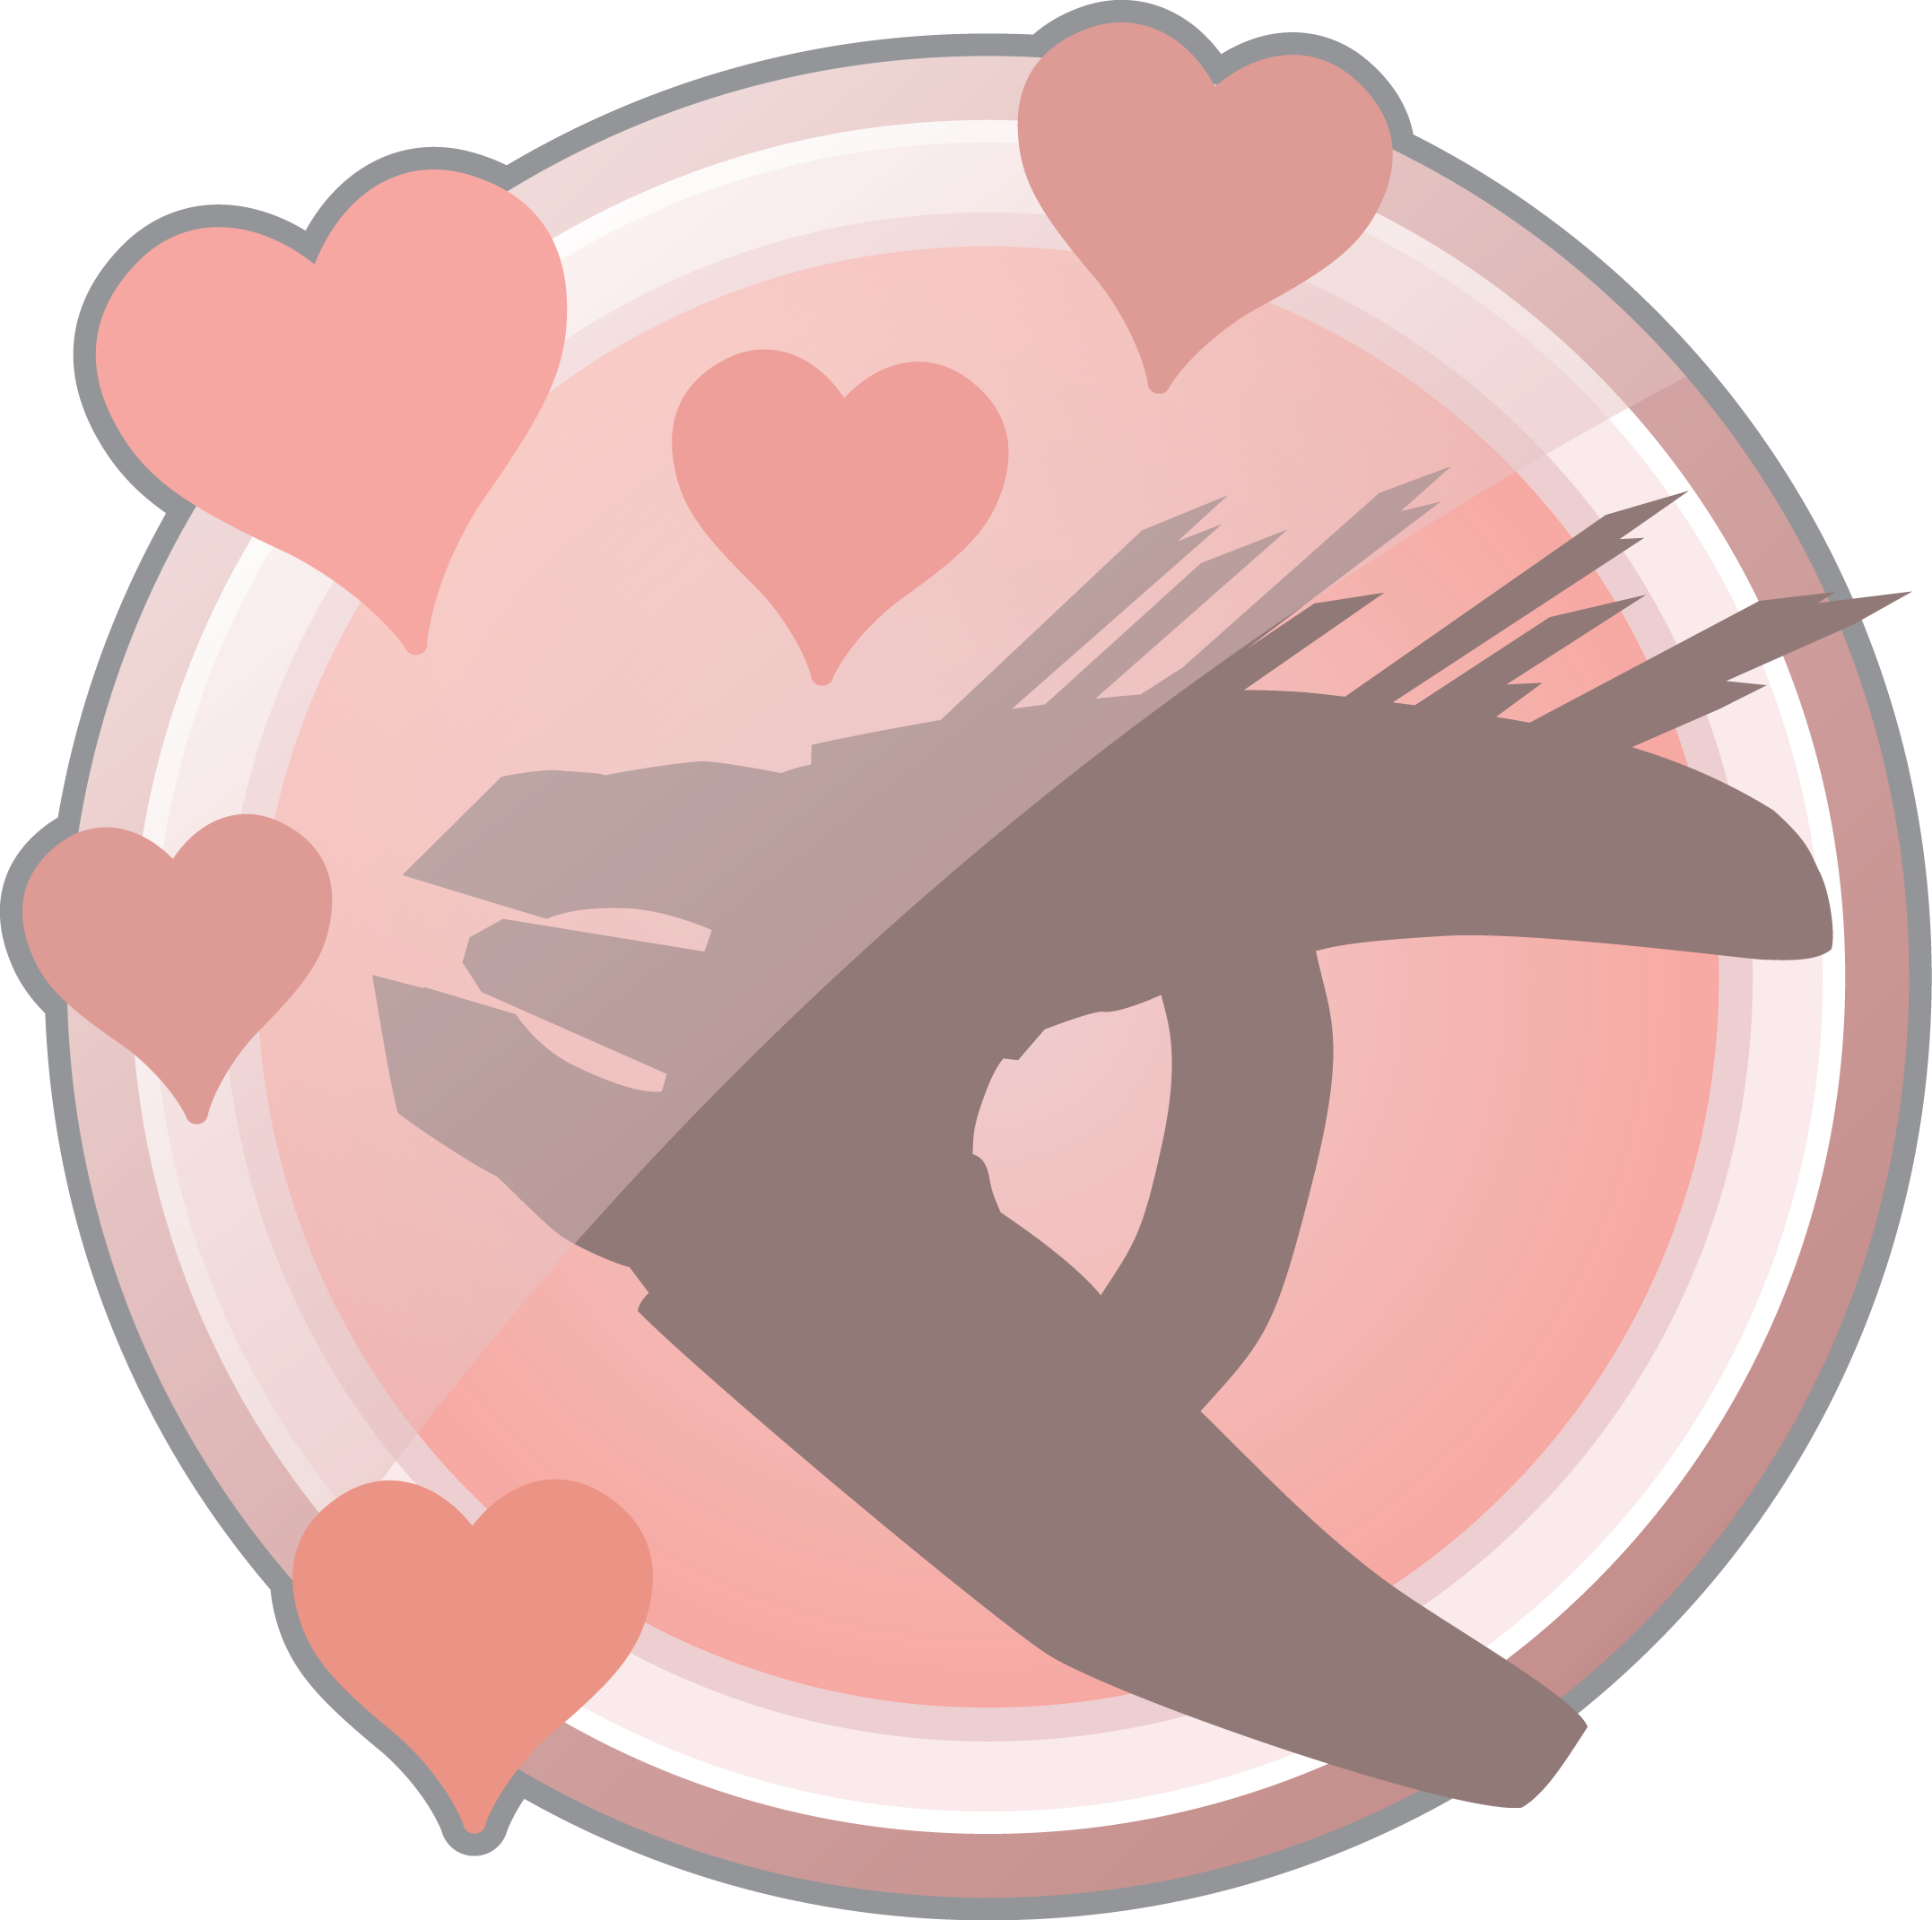 Pink mist png. Print the achievement on